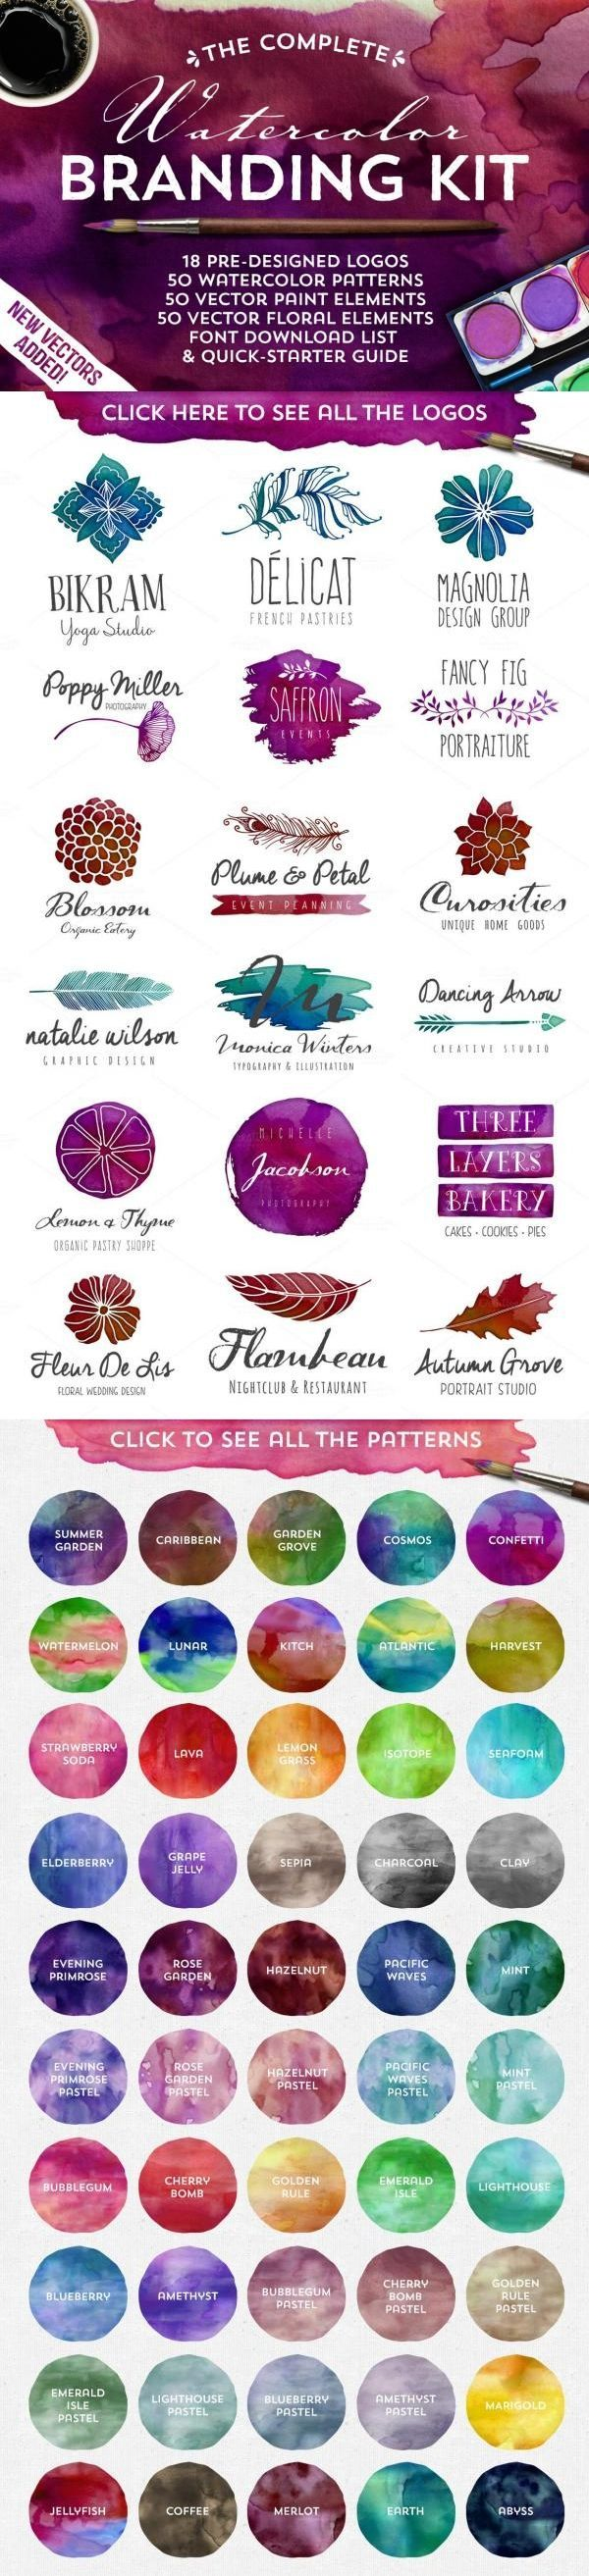 Introducing the Complete Watercolor Branding Kit! It has everything you need to design a totally awesome, vector watercolor logo. Discover all the amazing design goods 97% off only on Creative Market. (Ends 3/17) https://creativemarket.com/bundle/march-big-bundle?utm_content=buffera09bd&utm_medium=social&utm_source=pinterest.com&utm_campaign=buffer